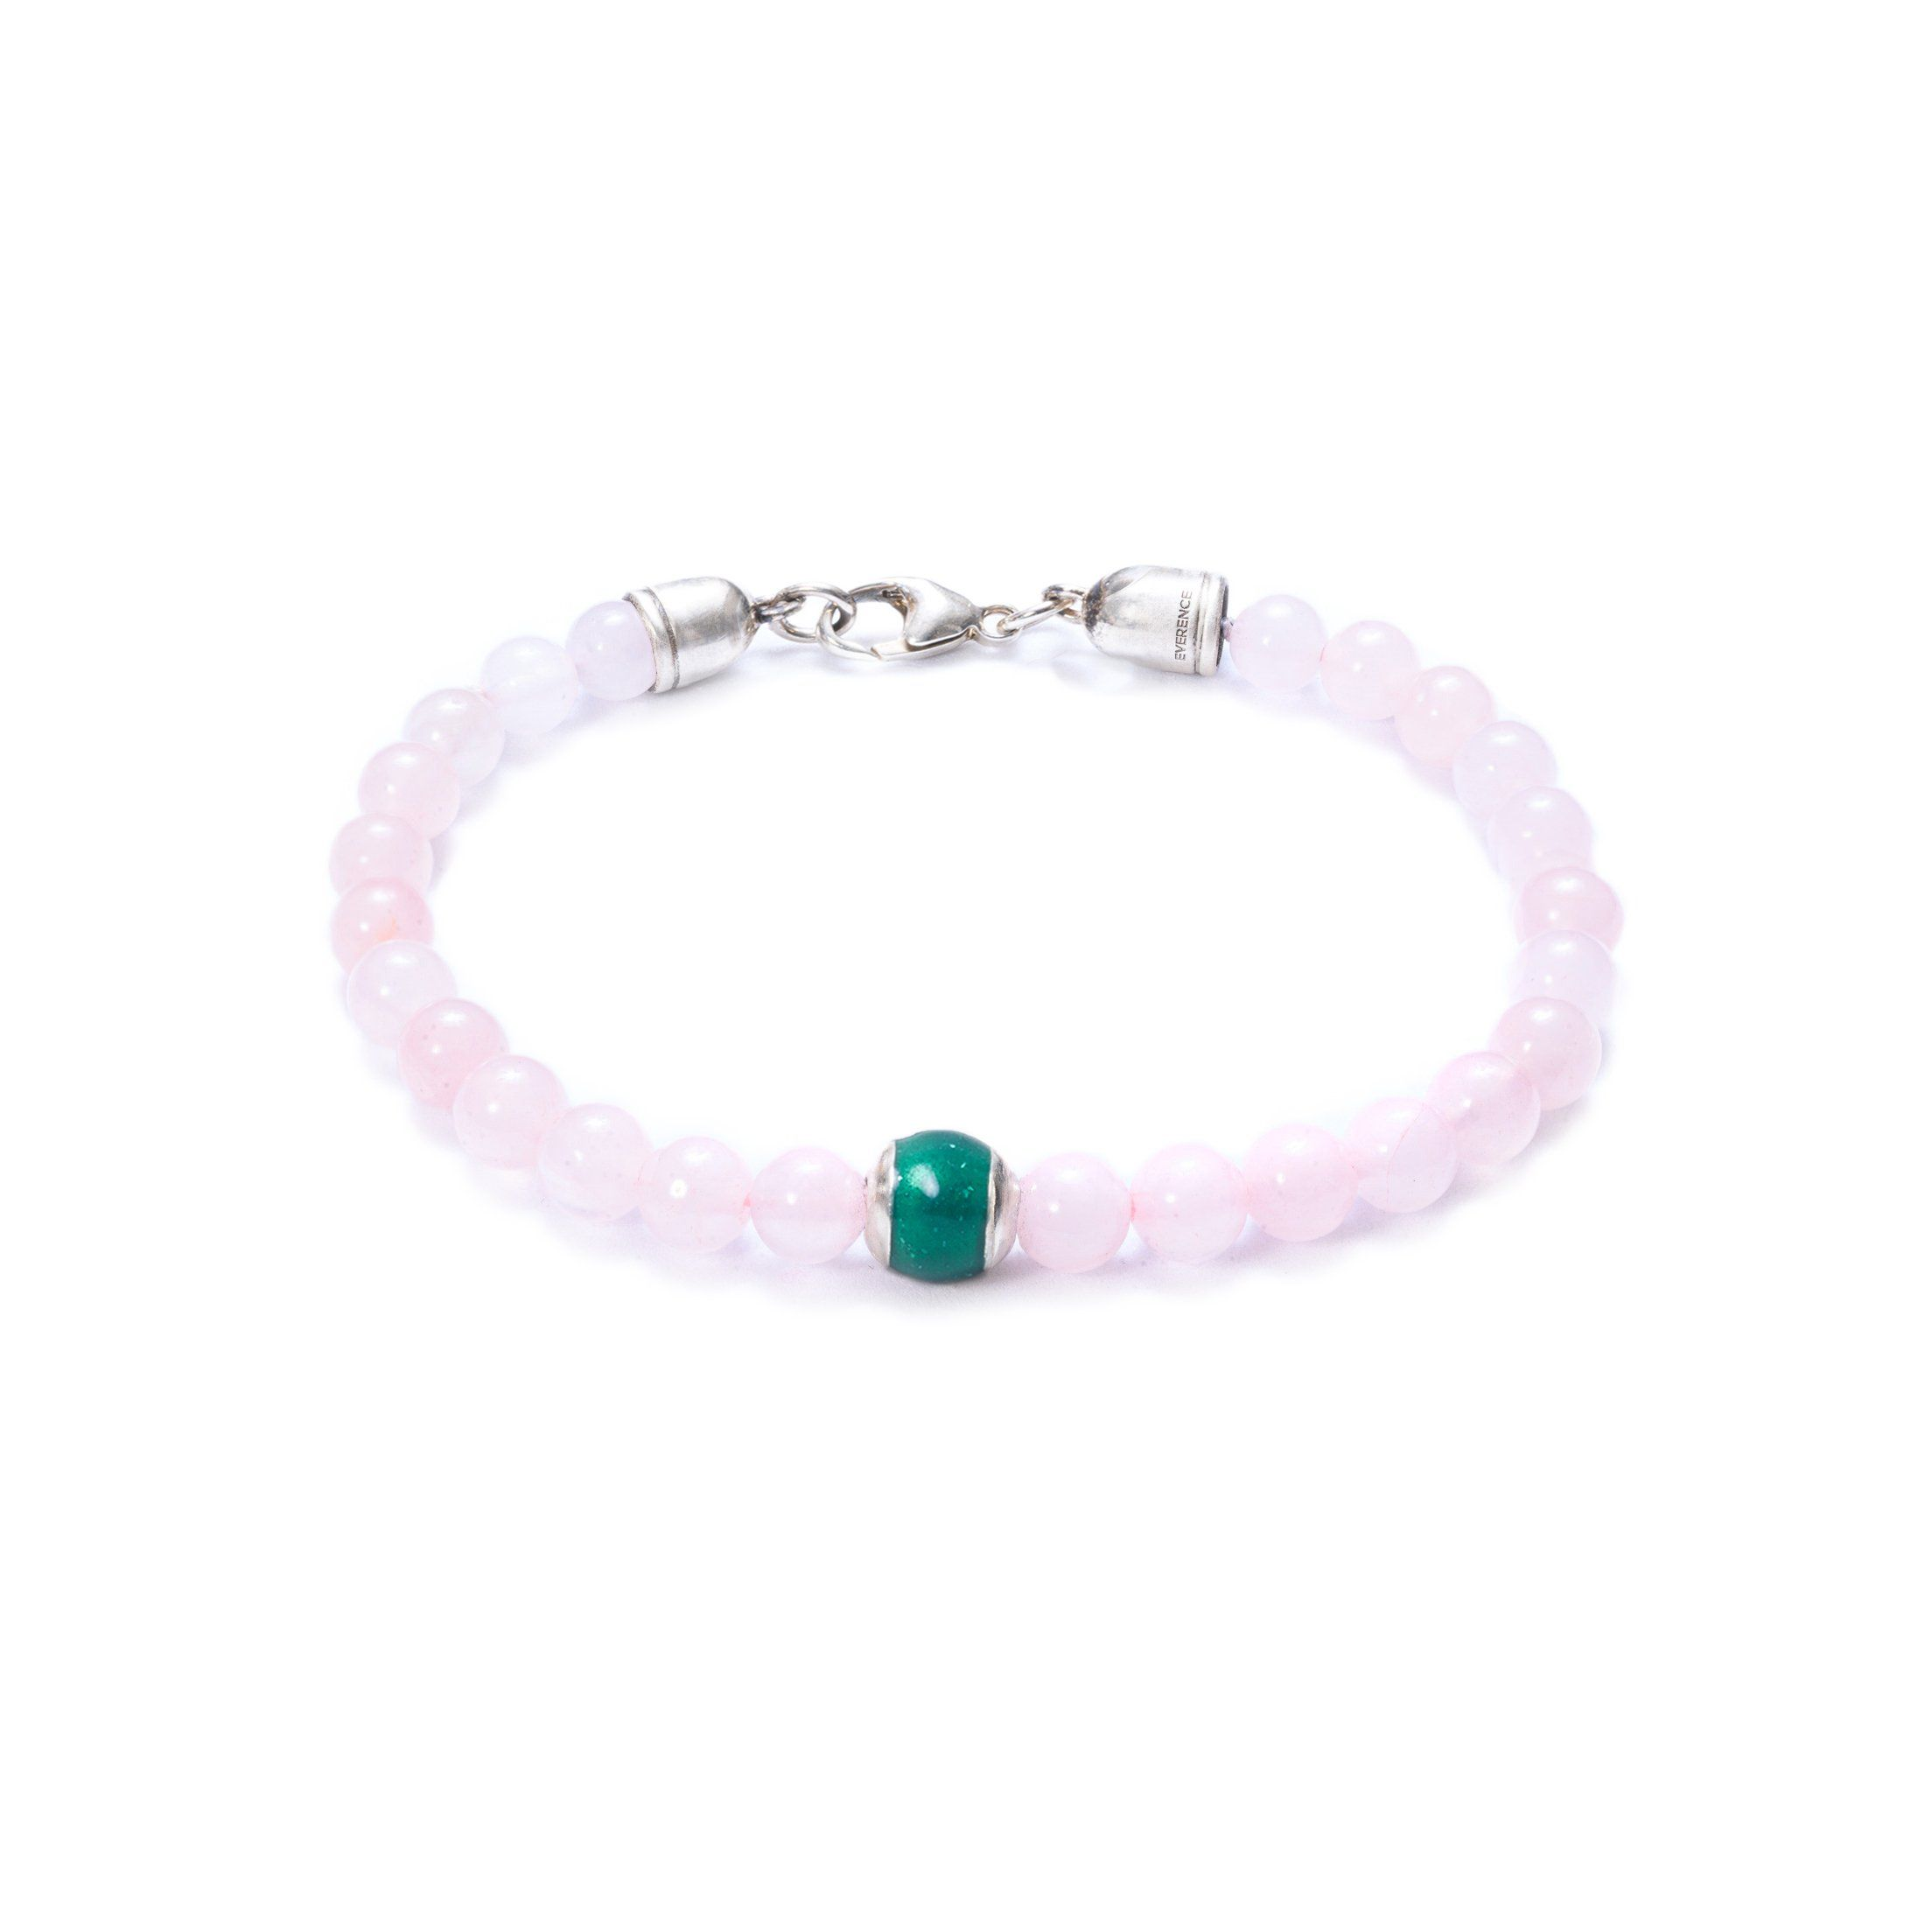 Rose Quartz, One Everence Bead Everence Green Lobster Claw 7